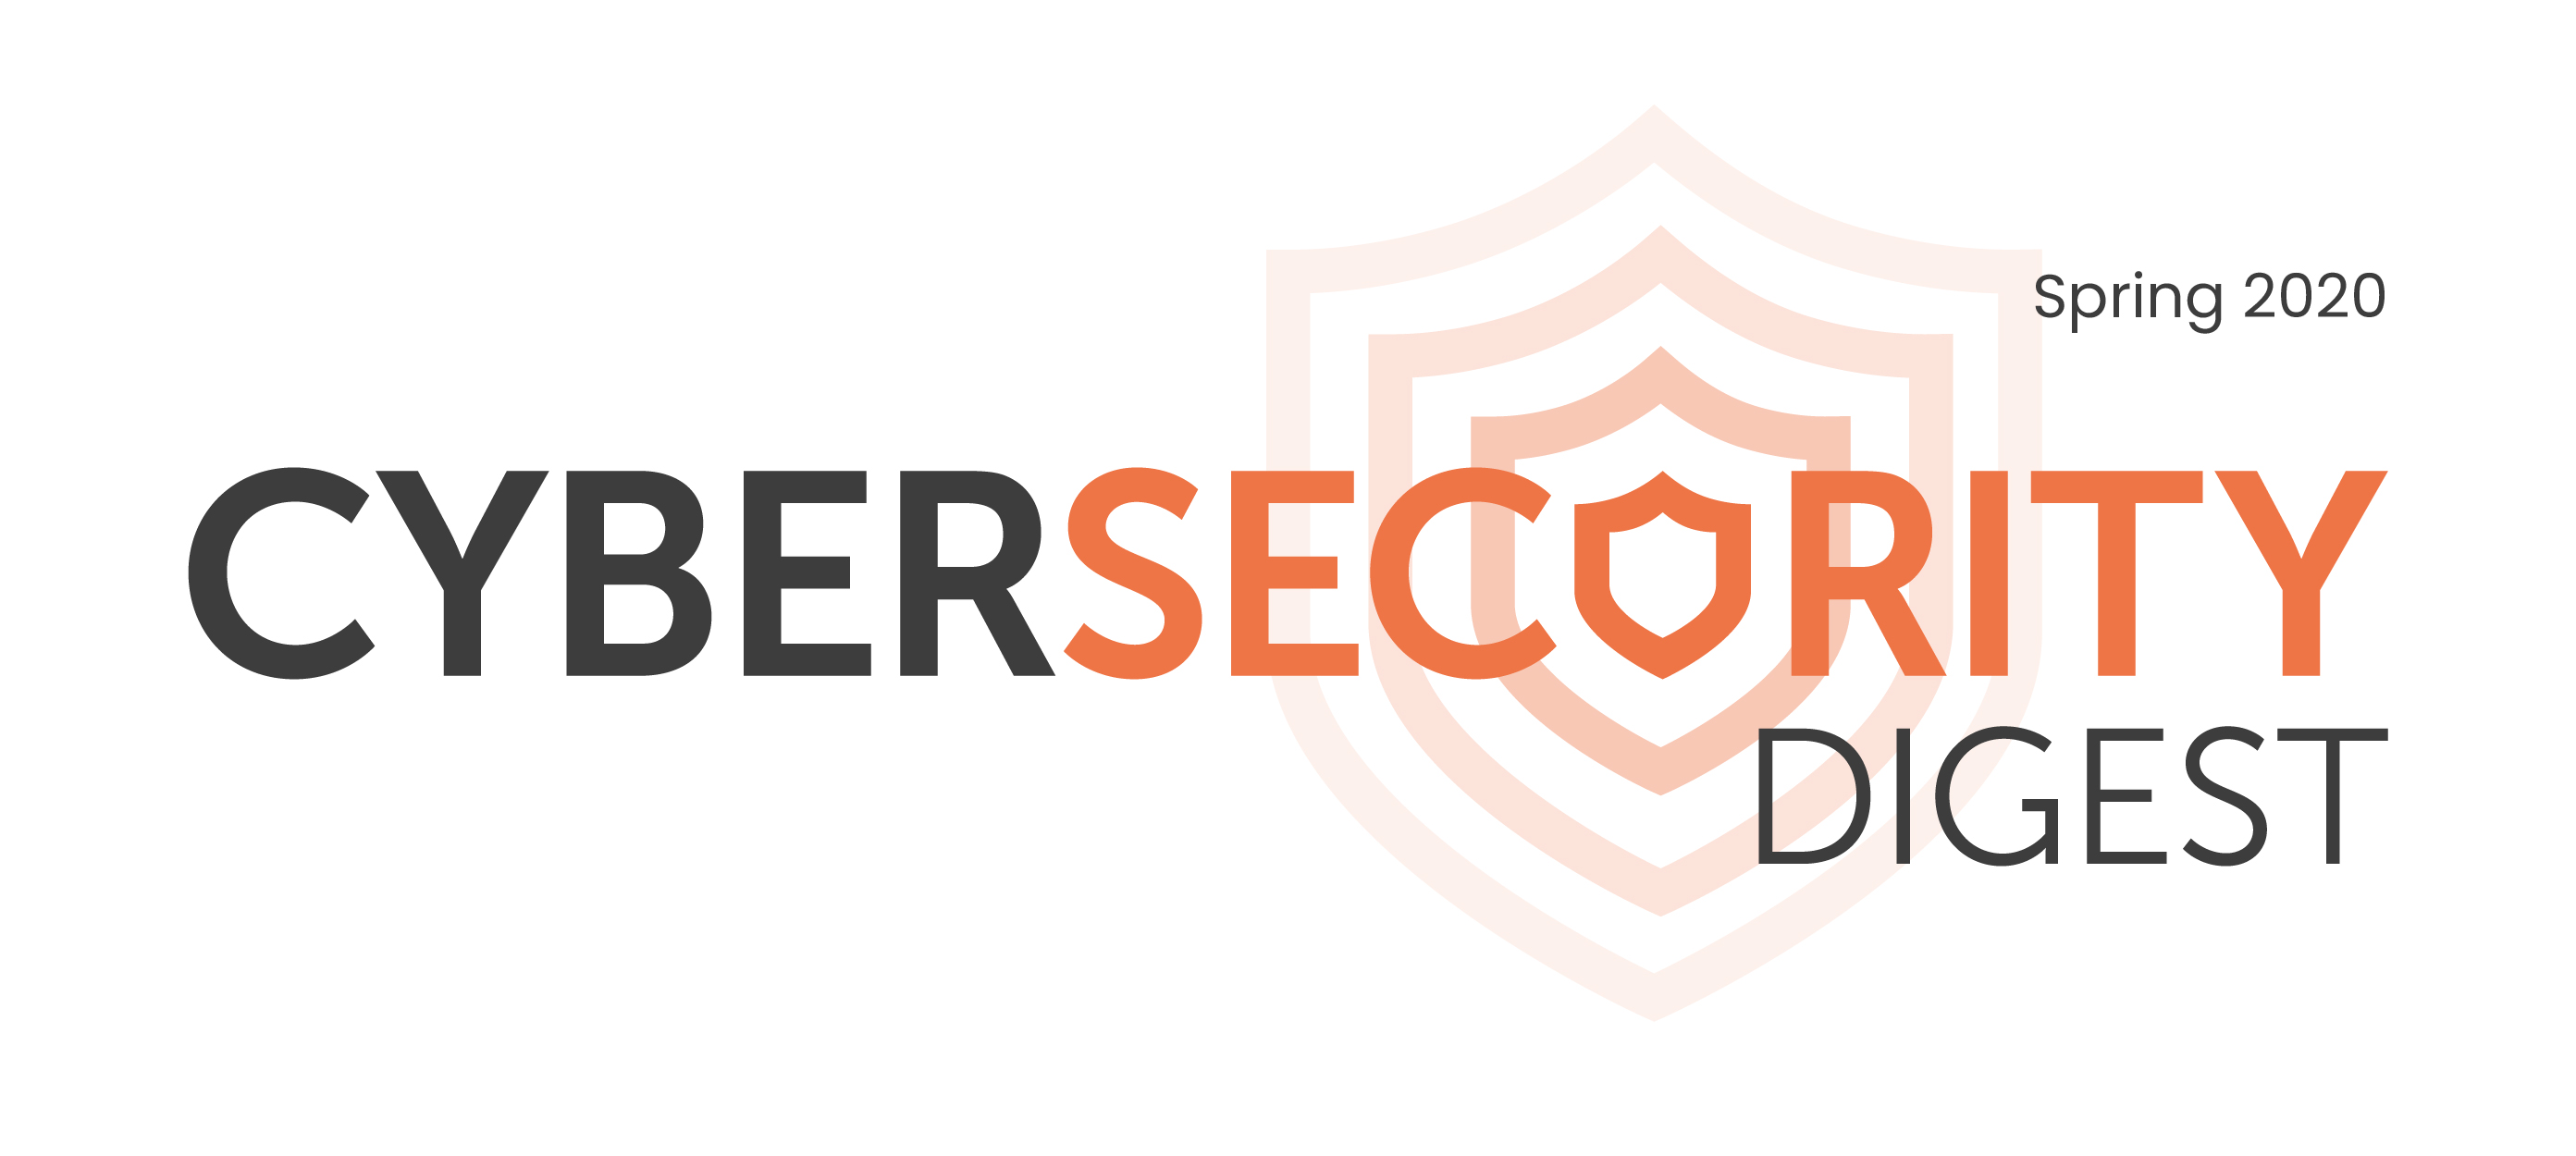 Graphic: Cybersecurity Digest Spring 2020